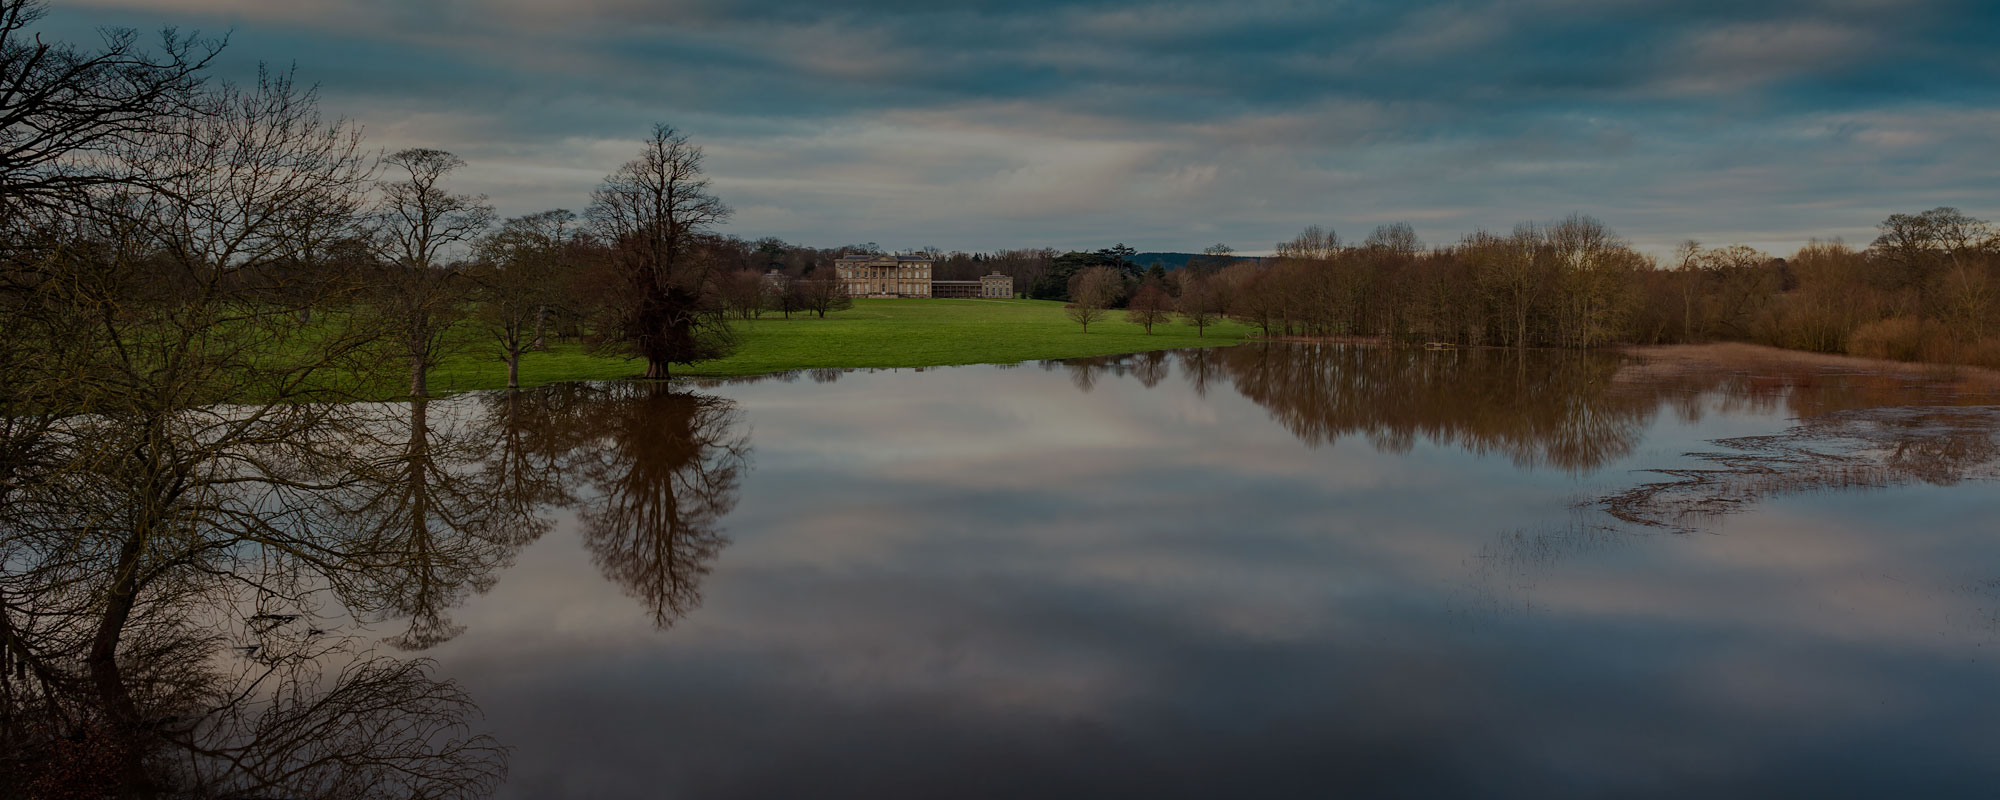 Environment Agency use Live CCTV to improve Flood Management